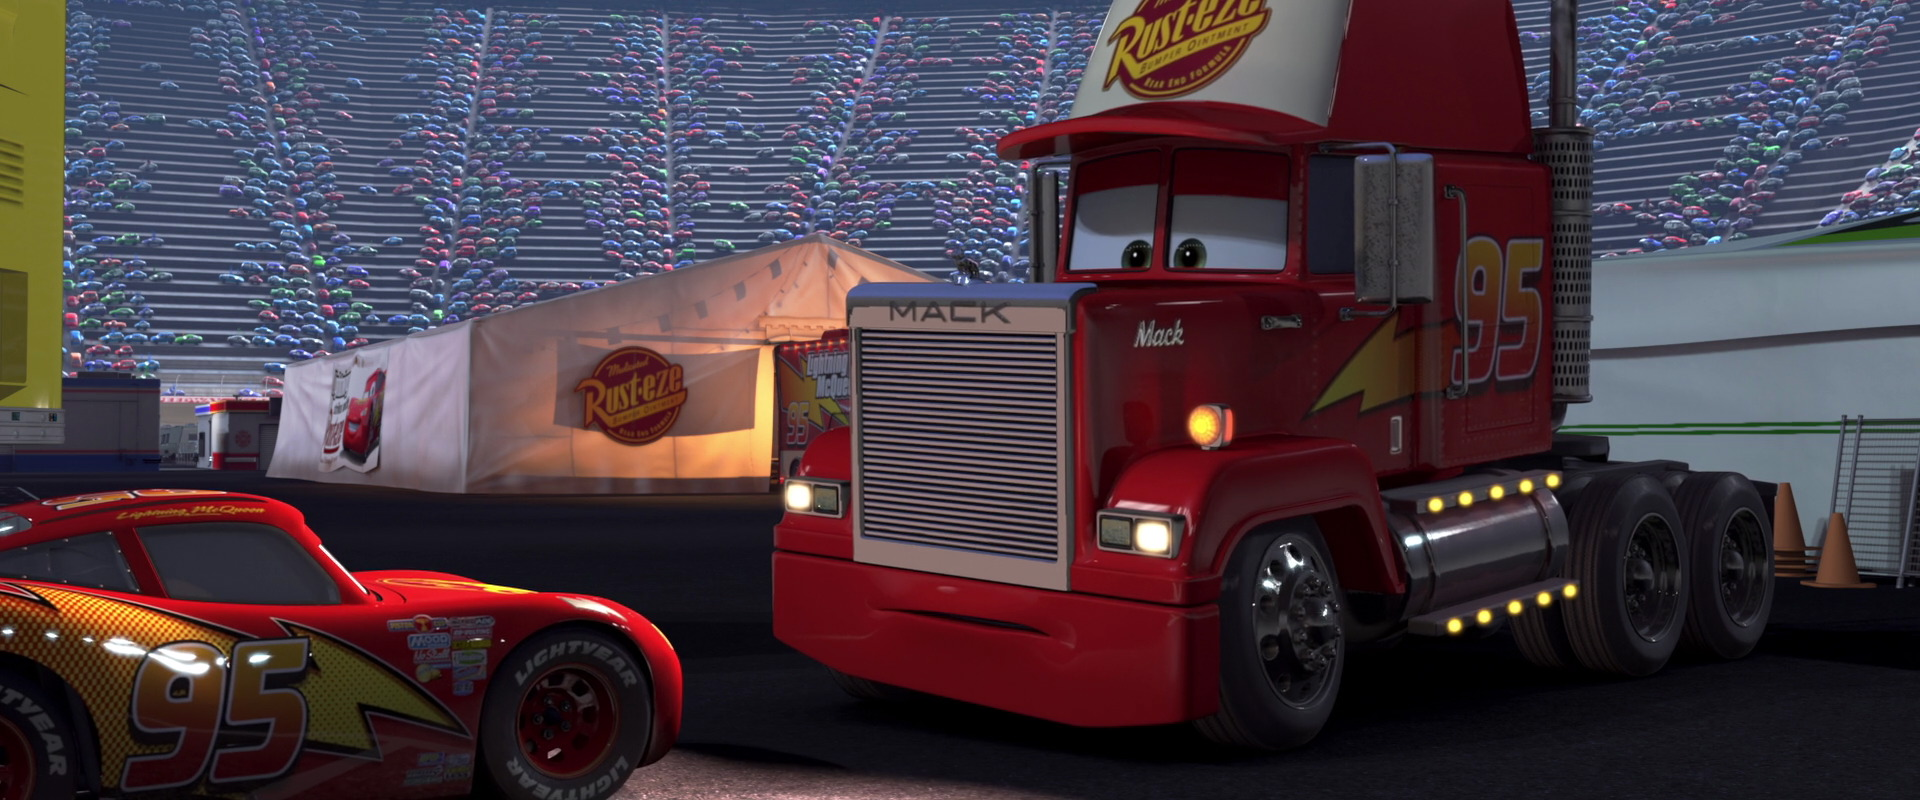 mack-personnage-cars-01